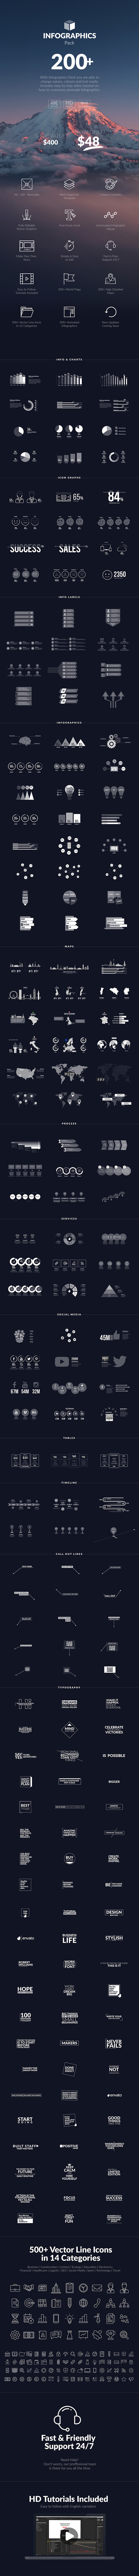 Pack d'infographie - 8